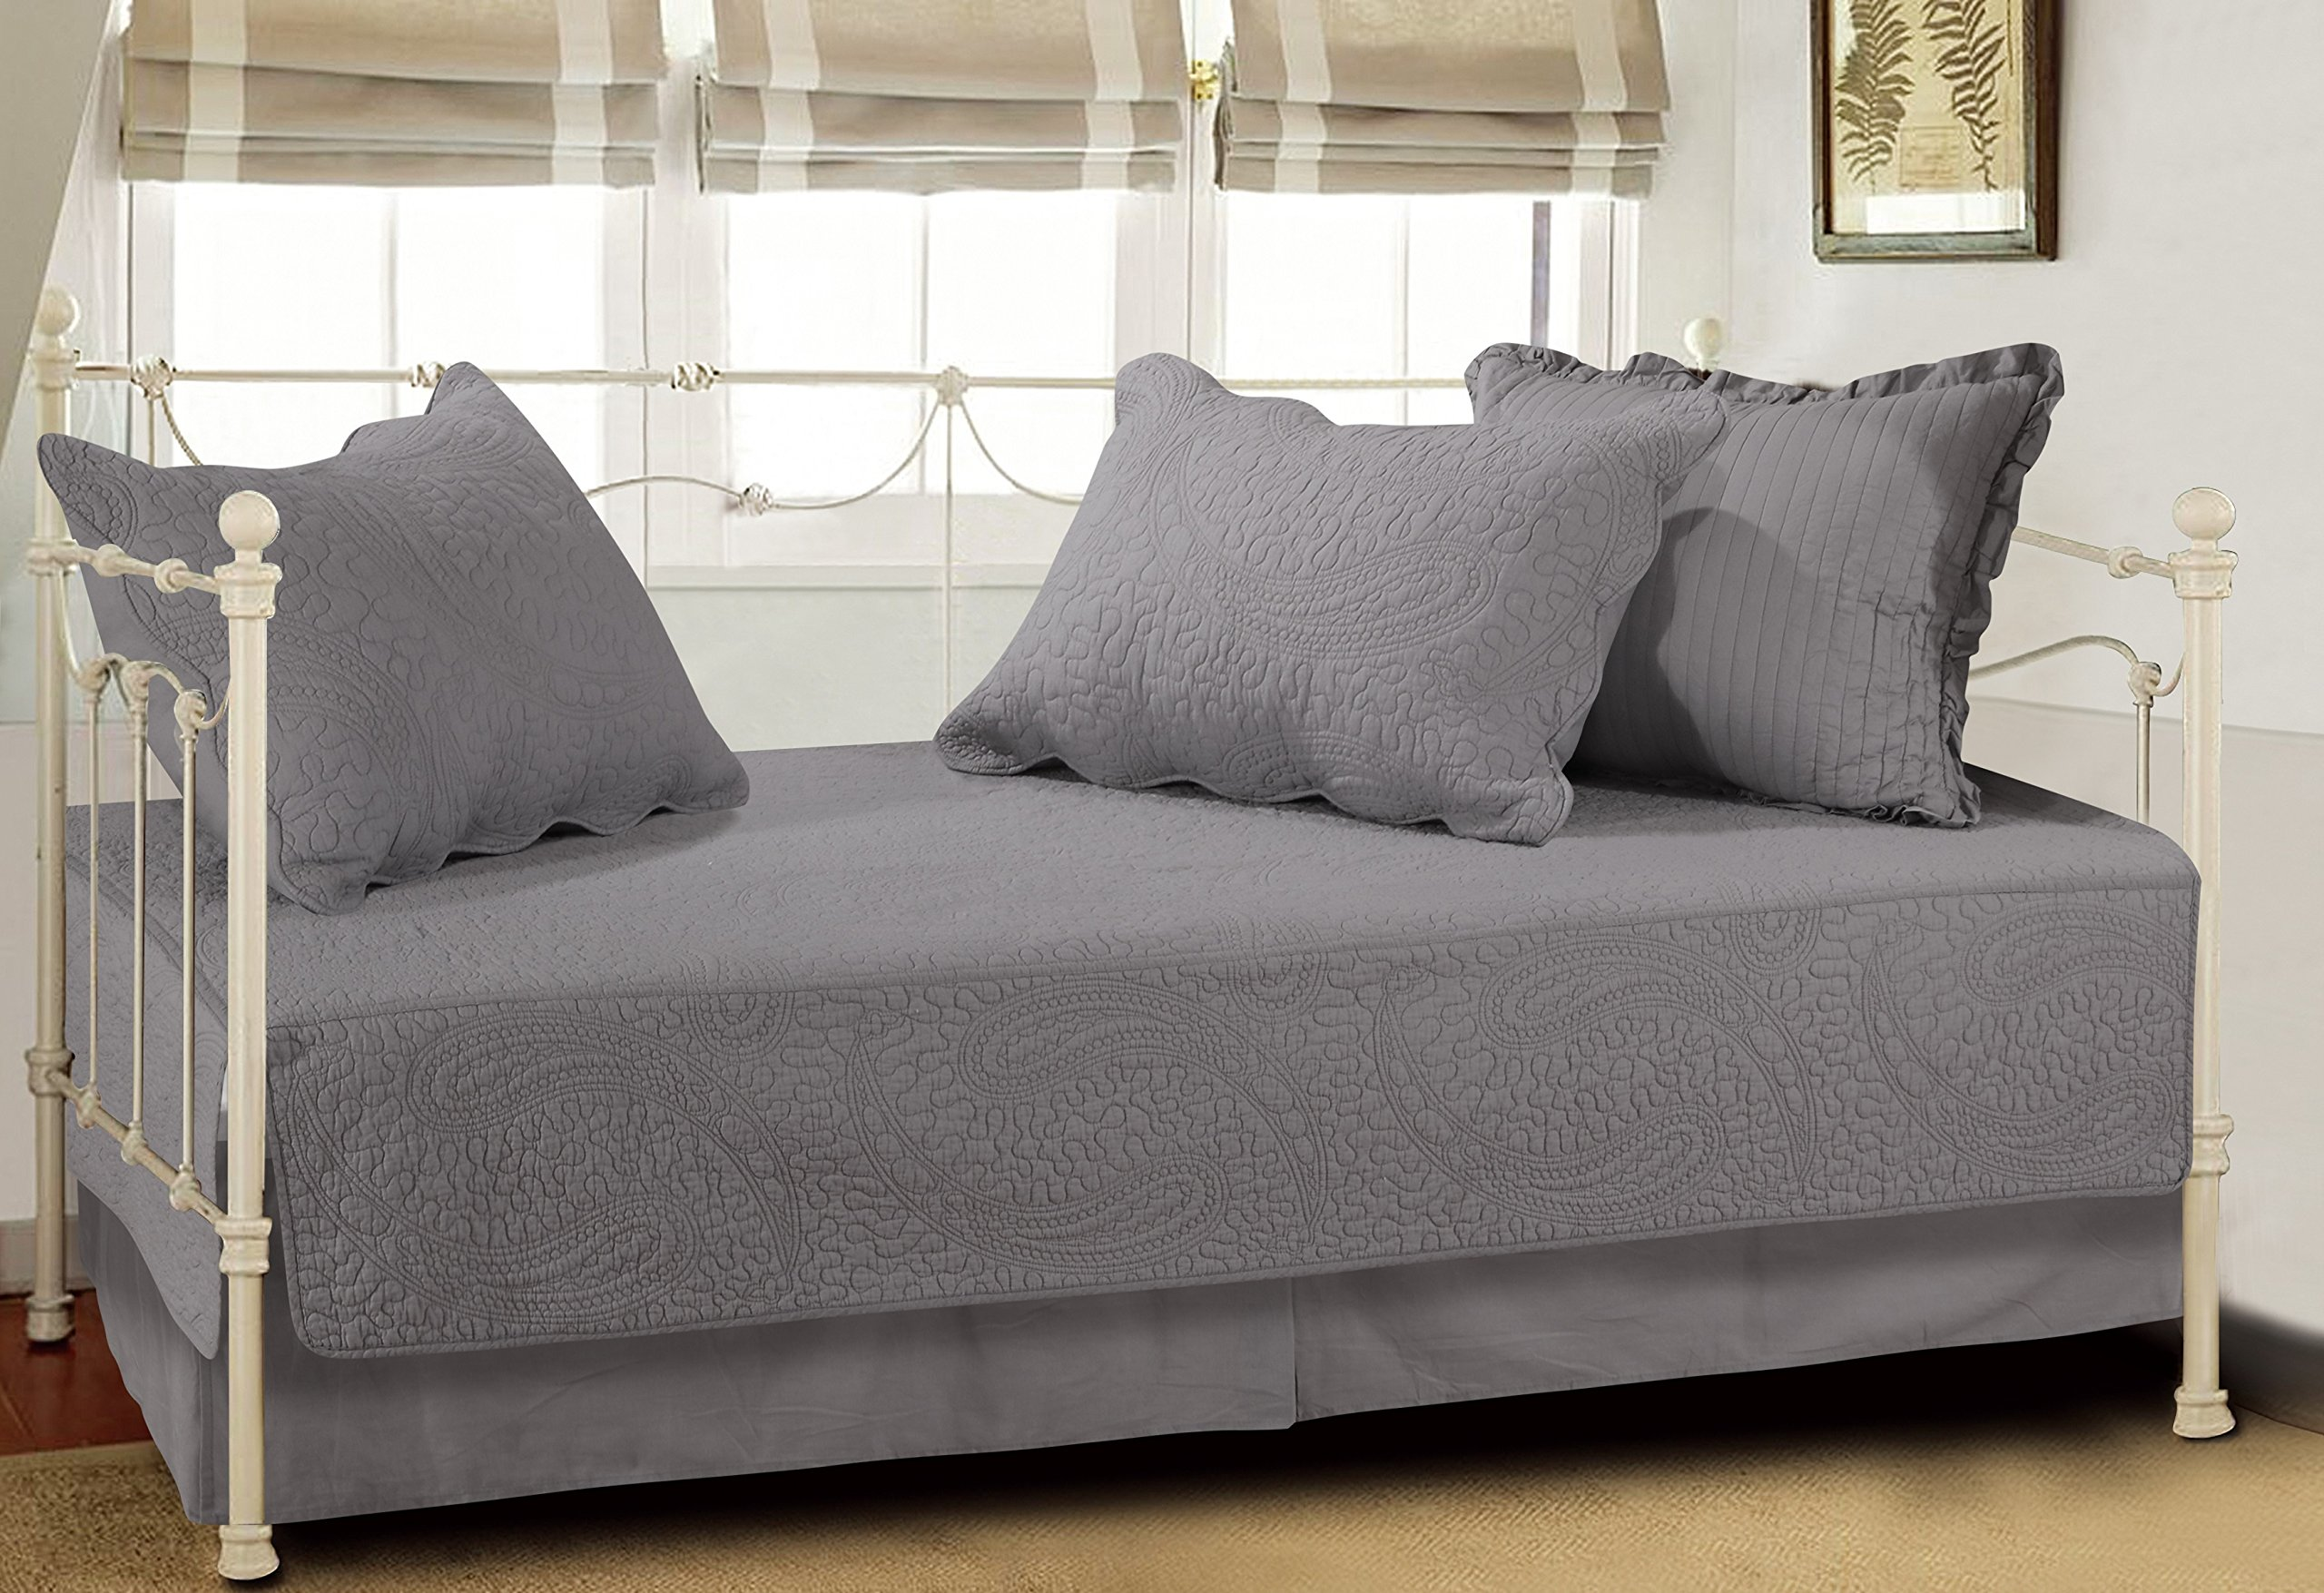 Greenland Home Paisley Dance Day Bed Quilt Set, Twin, Gray